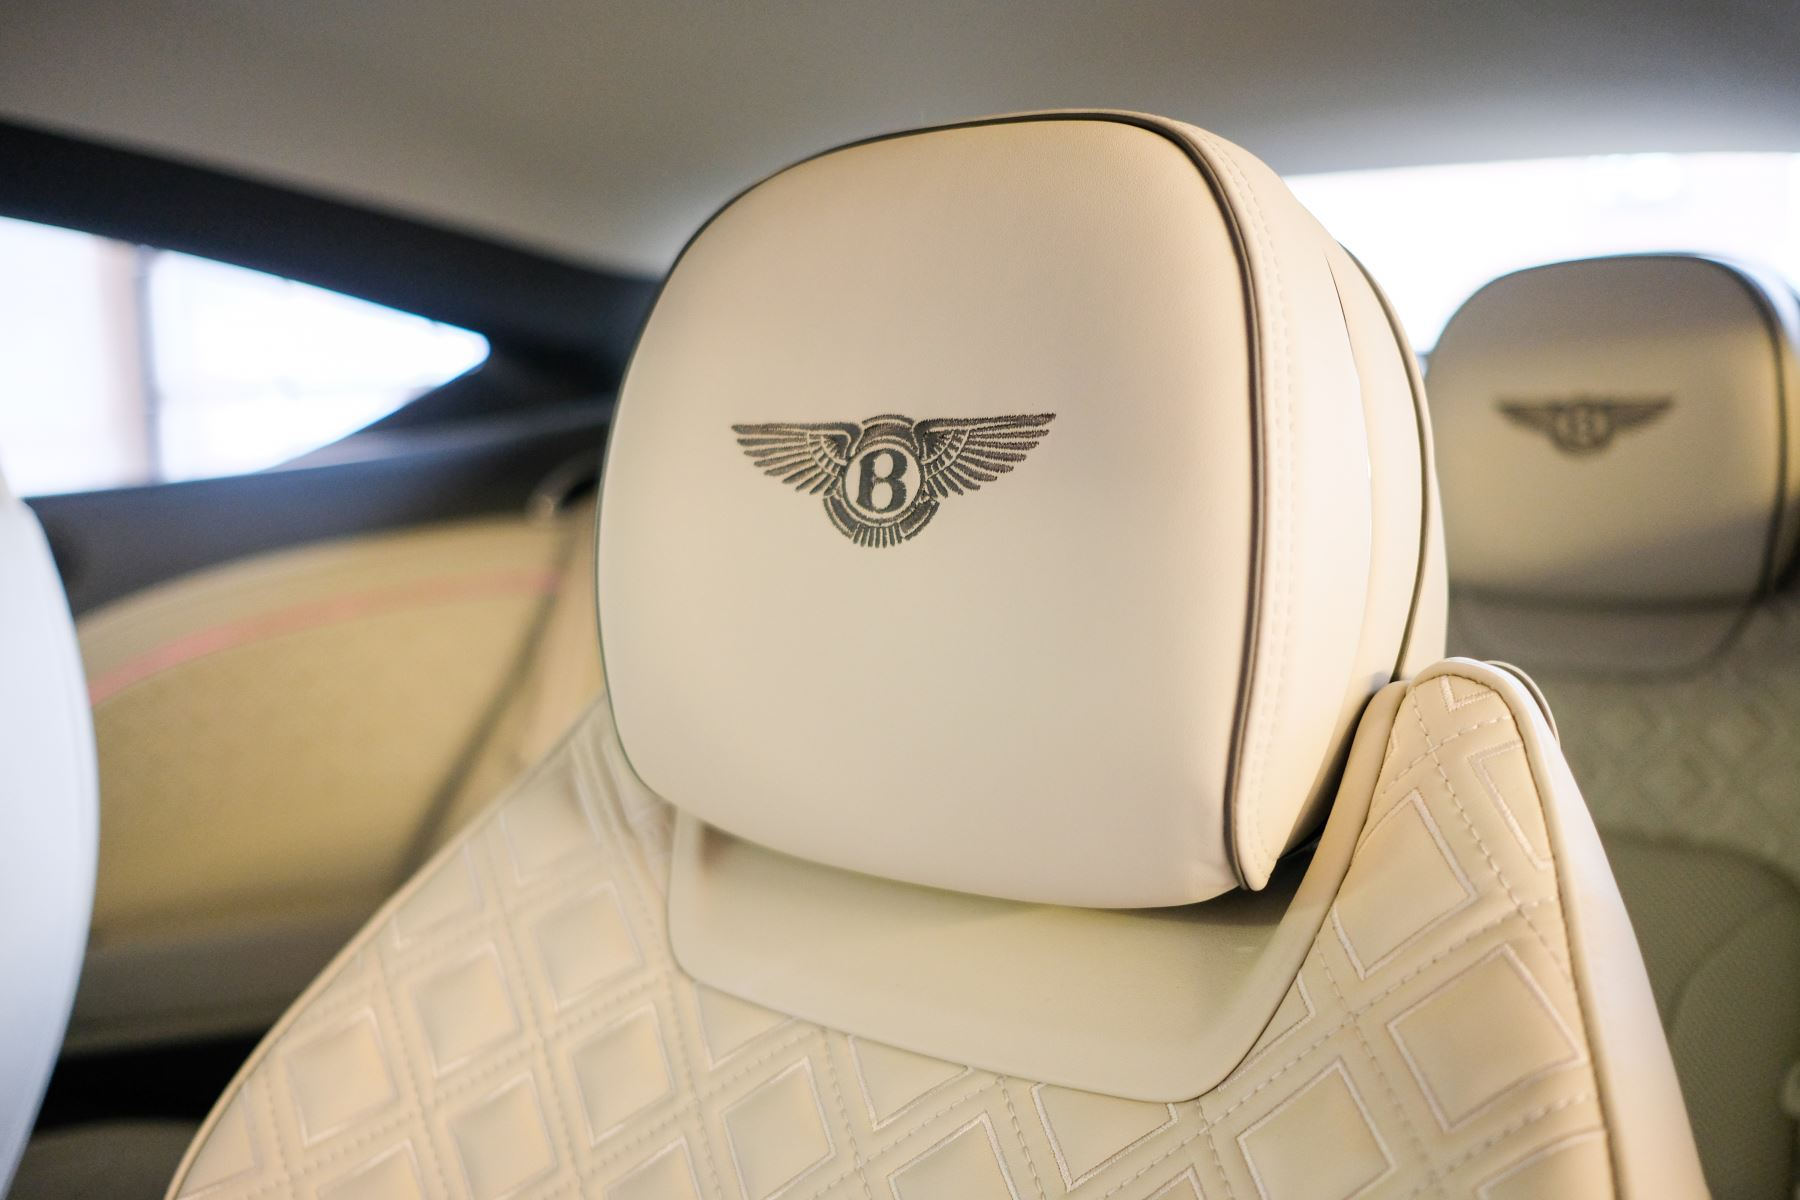 Bentley Continental GT 4.0 V8 - Mulliner Driving Specification with Black Painted Wheels - Touring and Centenary Spec image 50